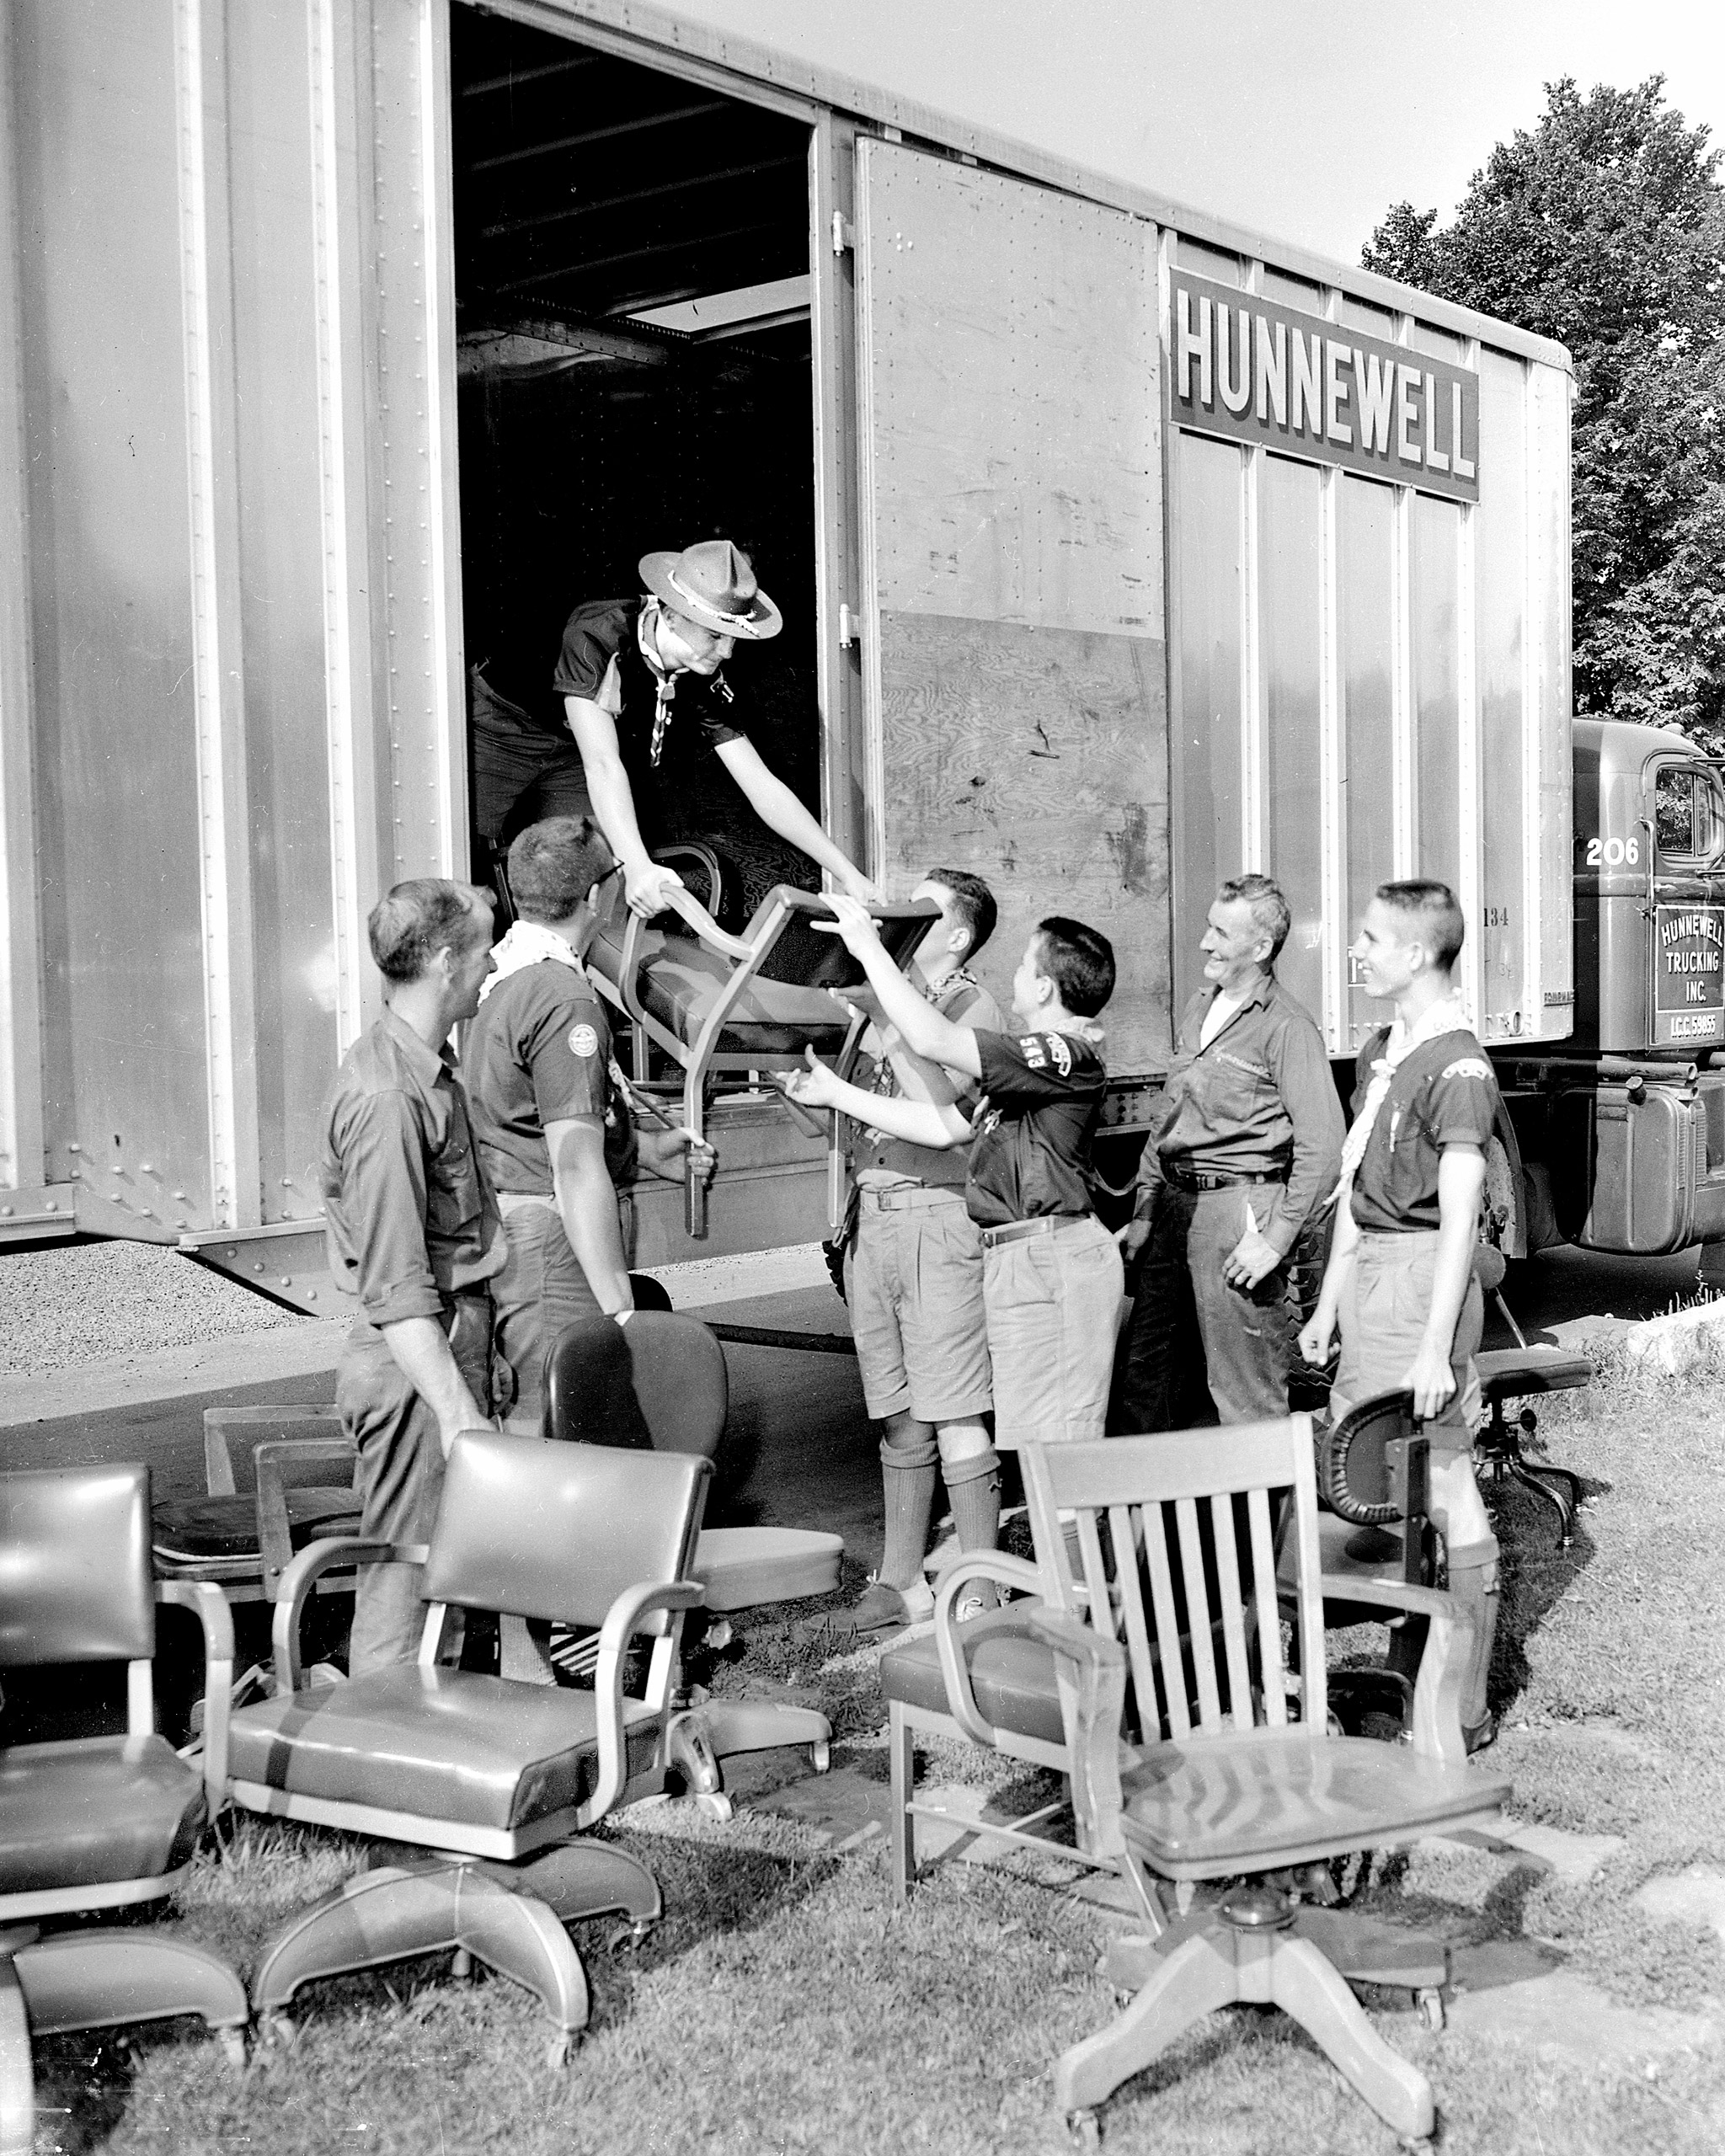 The Pine Tree Council, Boy Scouts of America, moved from Baxter Boulevard to new quarters on Auburn Street with Hunnewell Trucking helping out. Materials were loaded and unloaded by scouts and Hunnewell drivers. 1959.